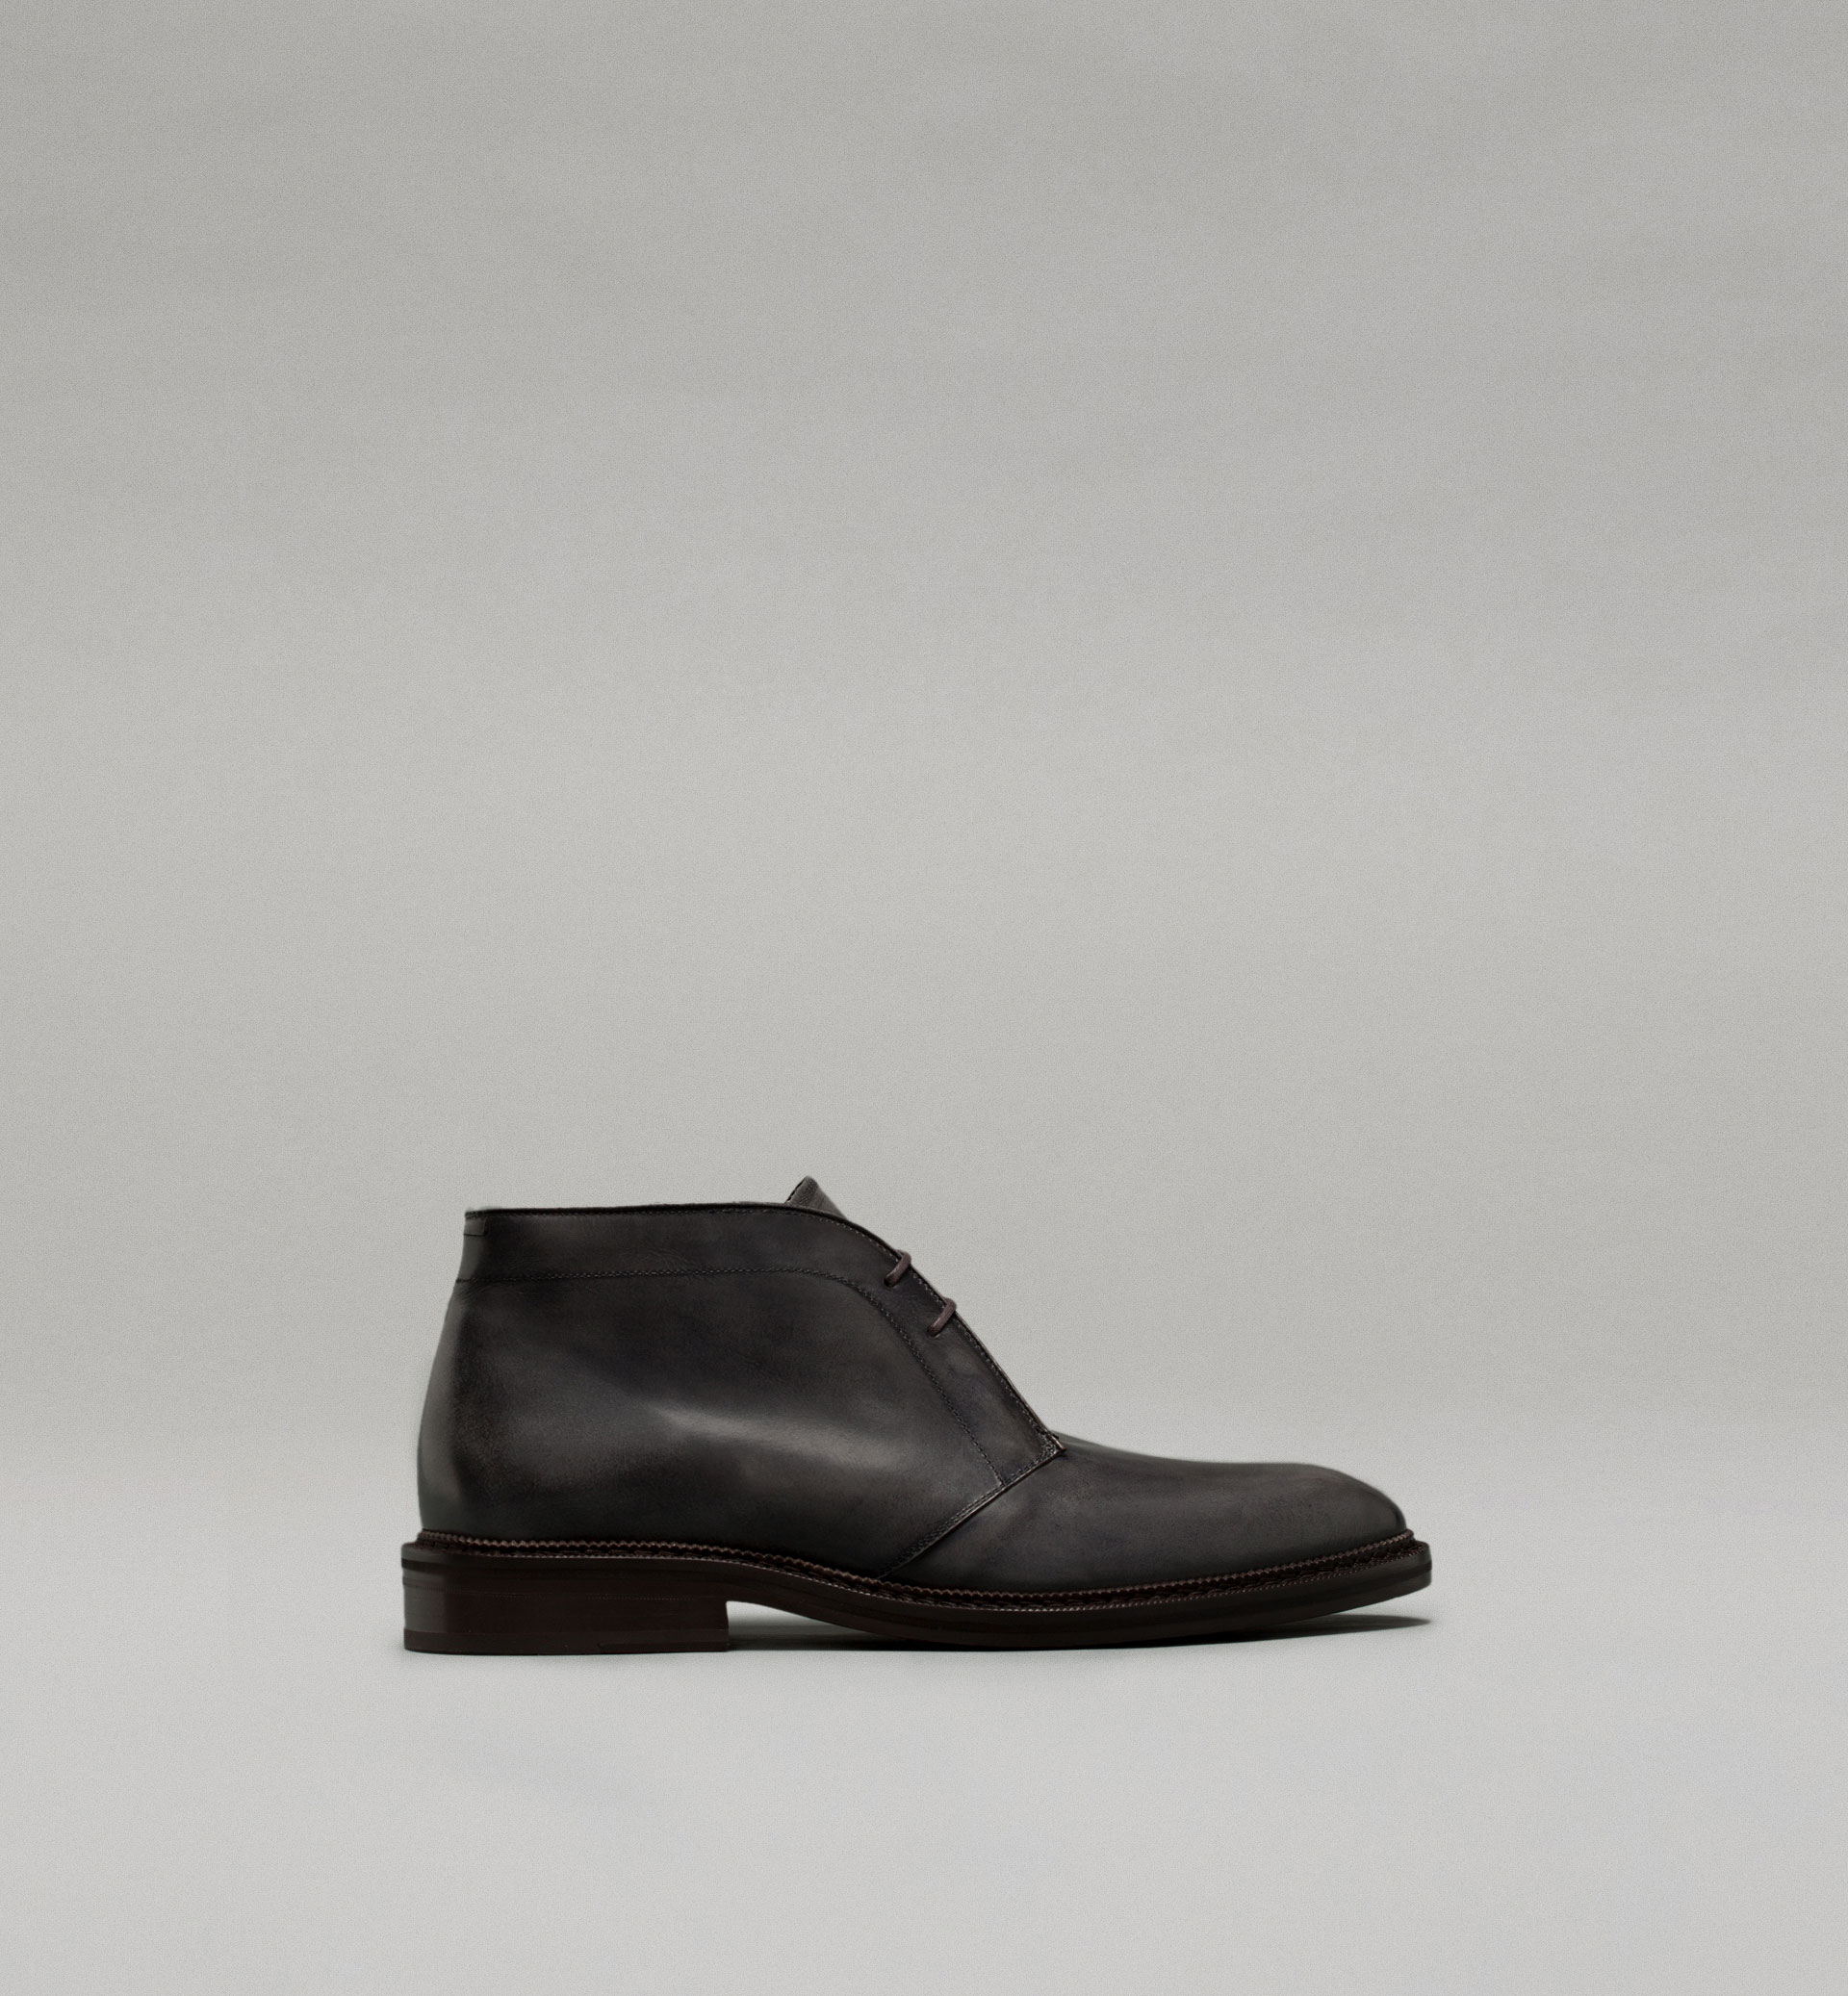 PERSONAL TAILORING NAPPA LEATHER ANKLE BOOTS